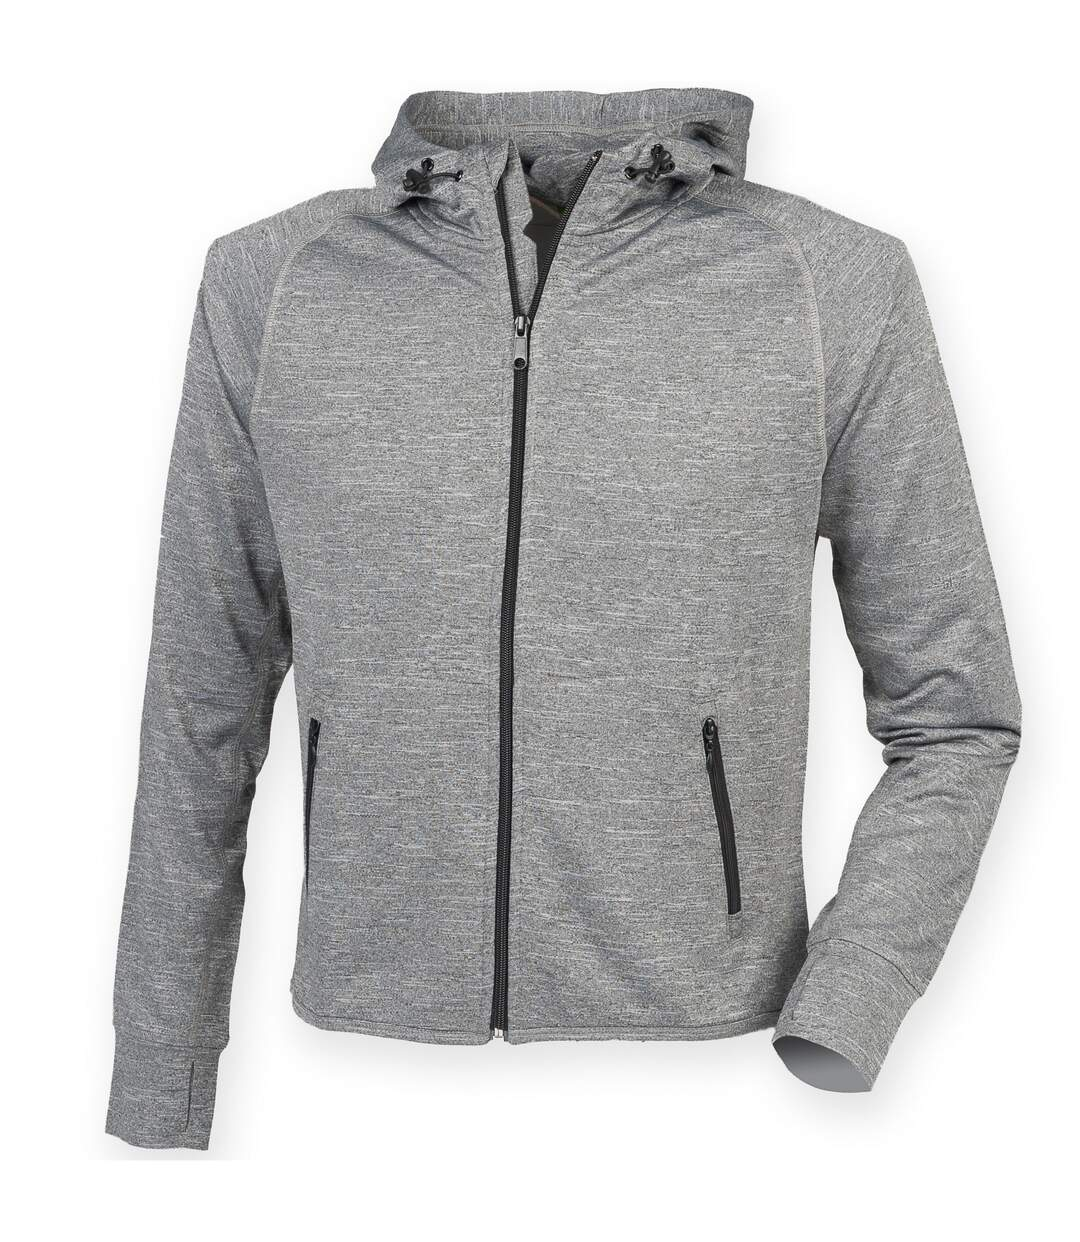 Tombo Teamsport Womens/Ladies Lightweight Running Hoodie With Reflective Tape (Grey Marl) - UTRW4790